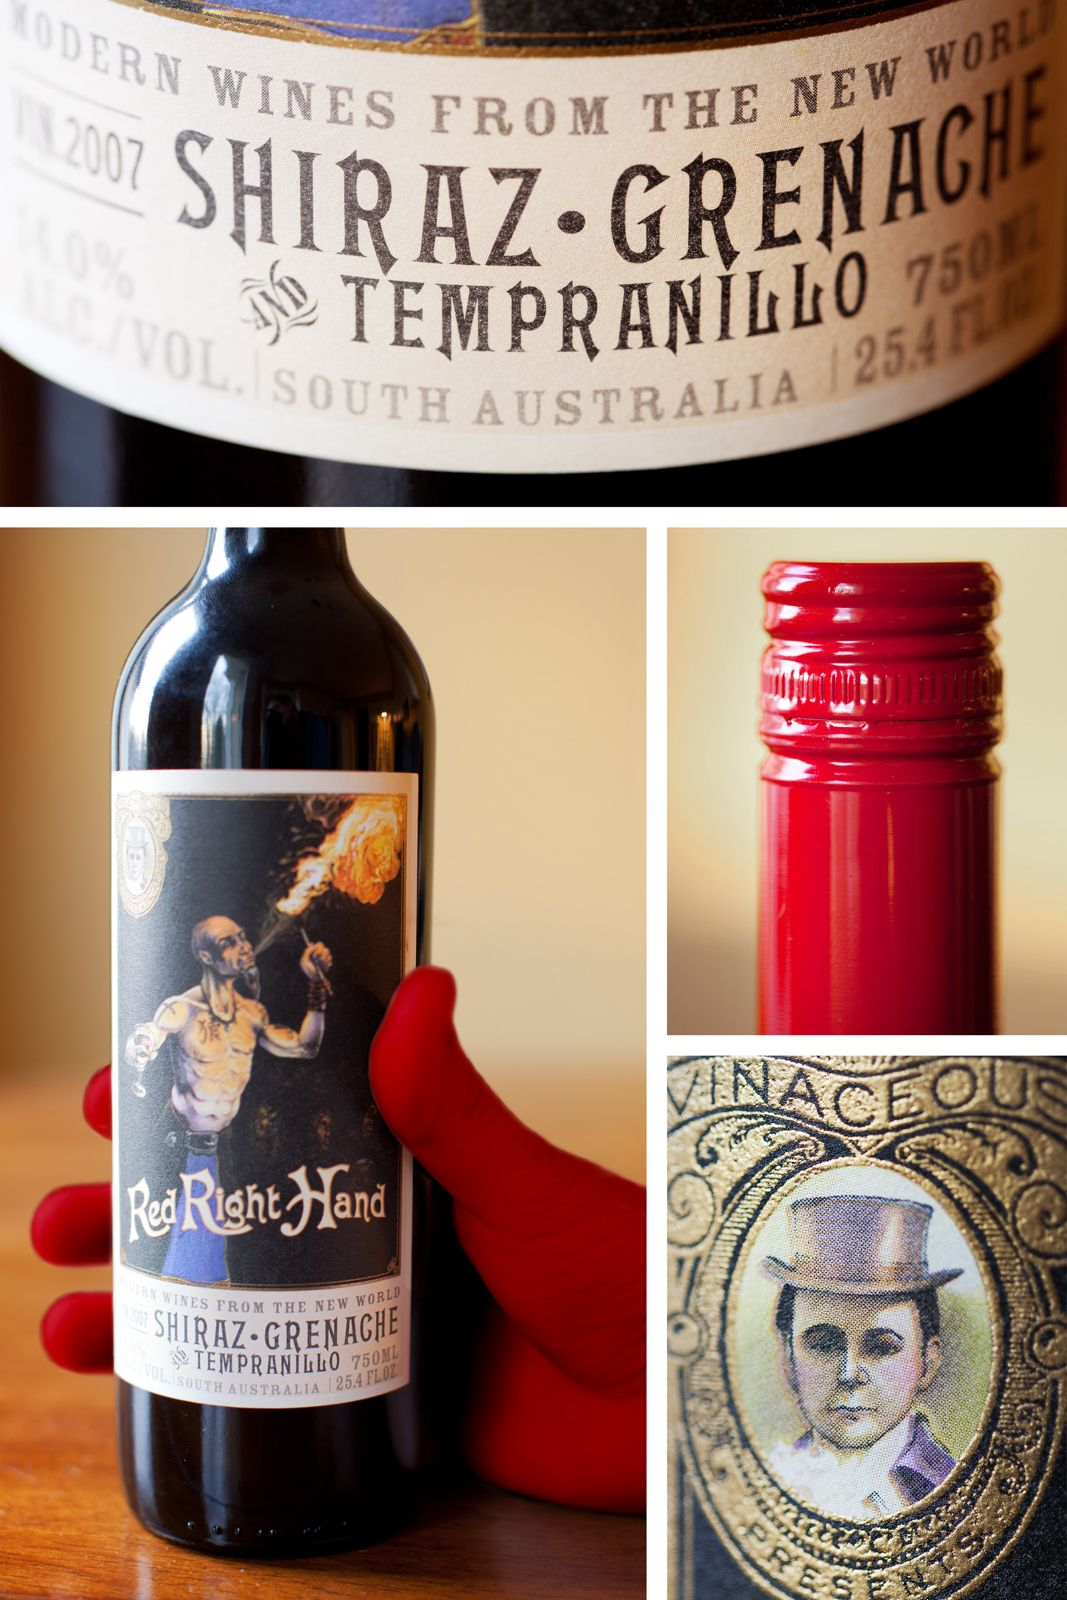 Vinaceous Red Right Hand Shiraz Grenache Tempranillo 2007 Mclaren Barossa Valley Australia Tempranillo Wines Grenache